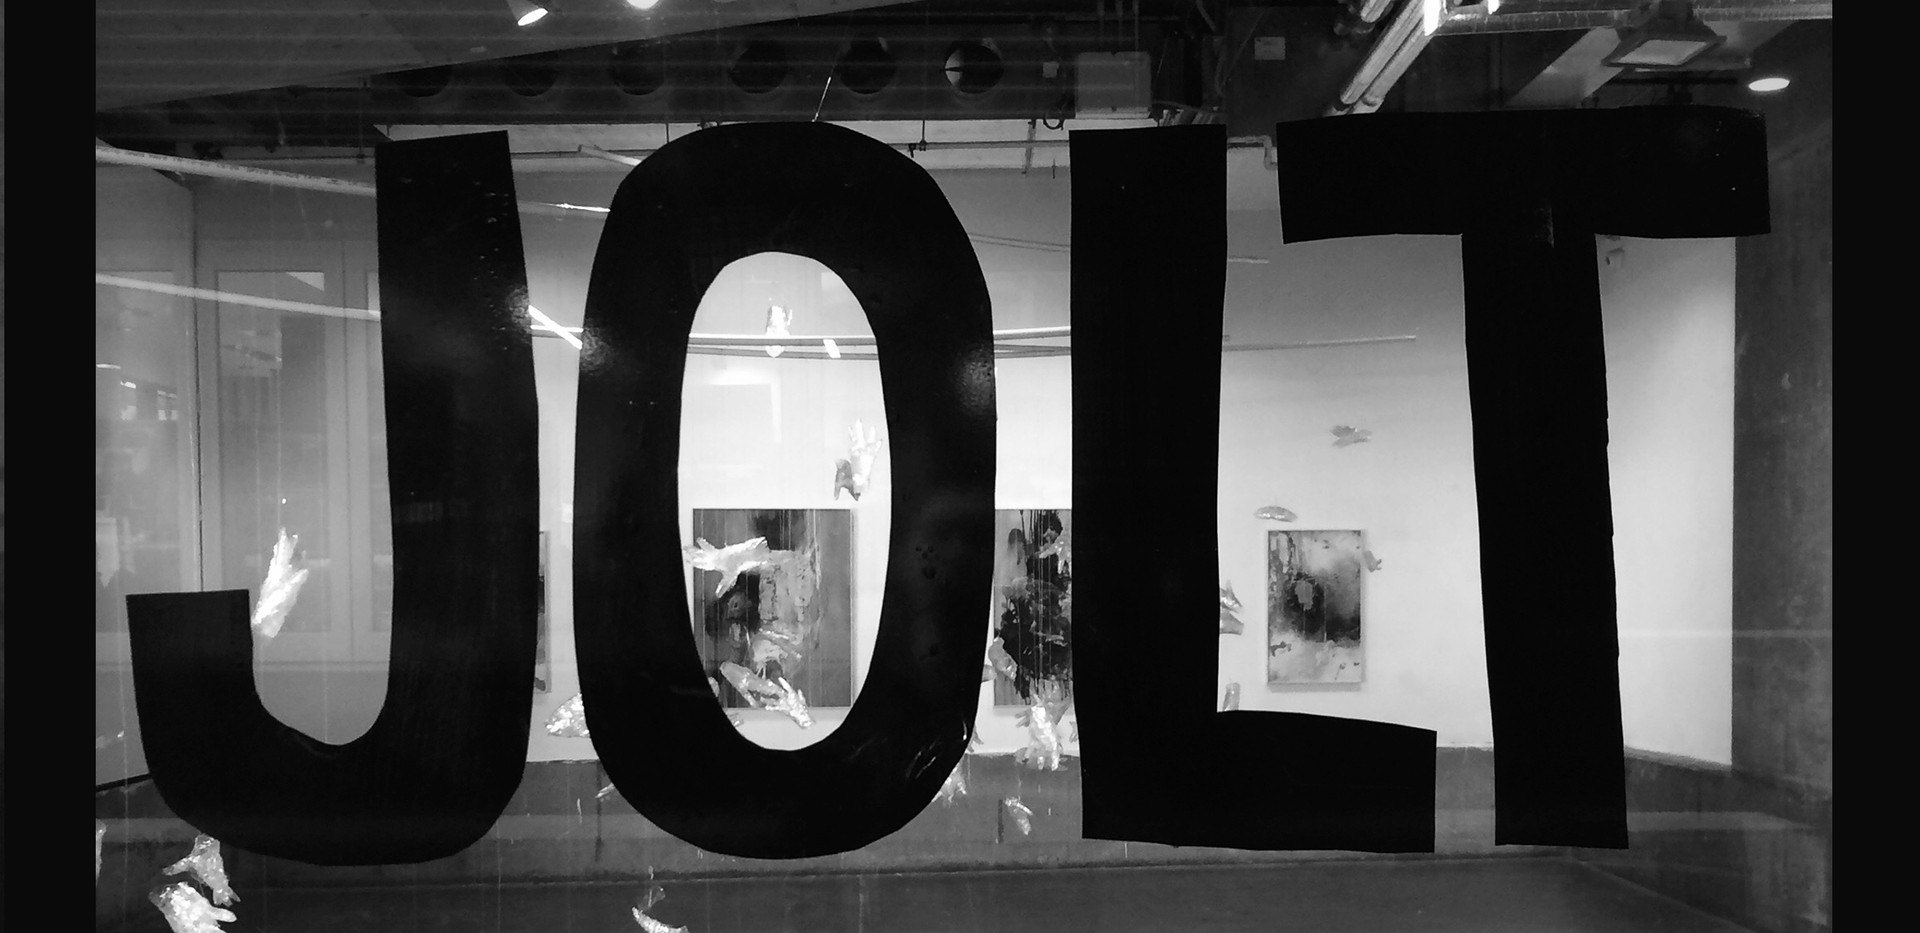 JOLT, No Vacancy Gallery